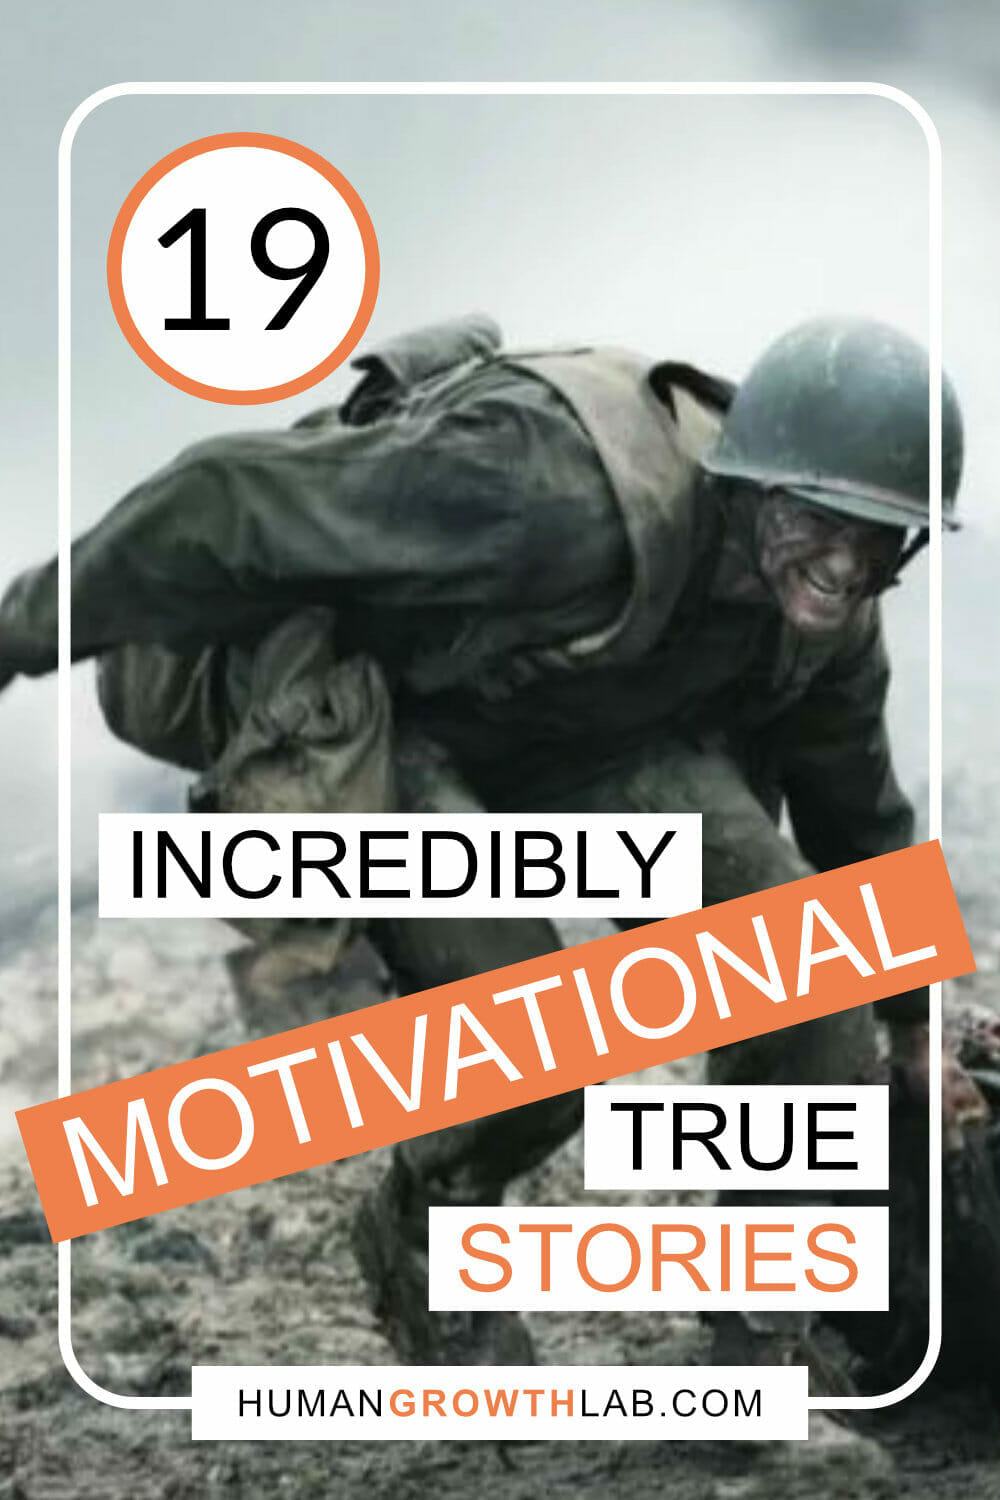 Enjoy these 19 incredible motivational stories and inspirational stories that will get to you so much, you will want to be successful no matter what. These are all true motivational stories and true inspirational stories of people throughout history and present times who have done great things. Use them to inspire you to greatness! #success #inspiration #motivation via @humangrowthlab